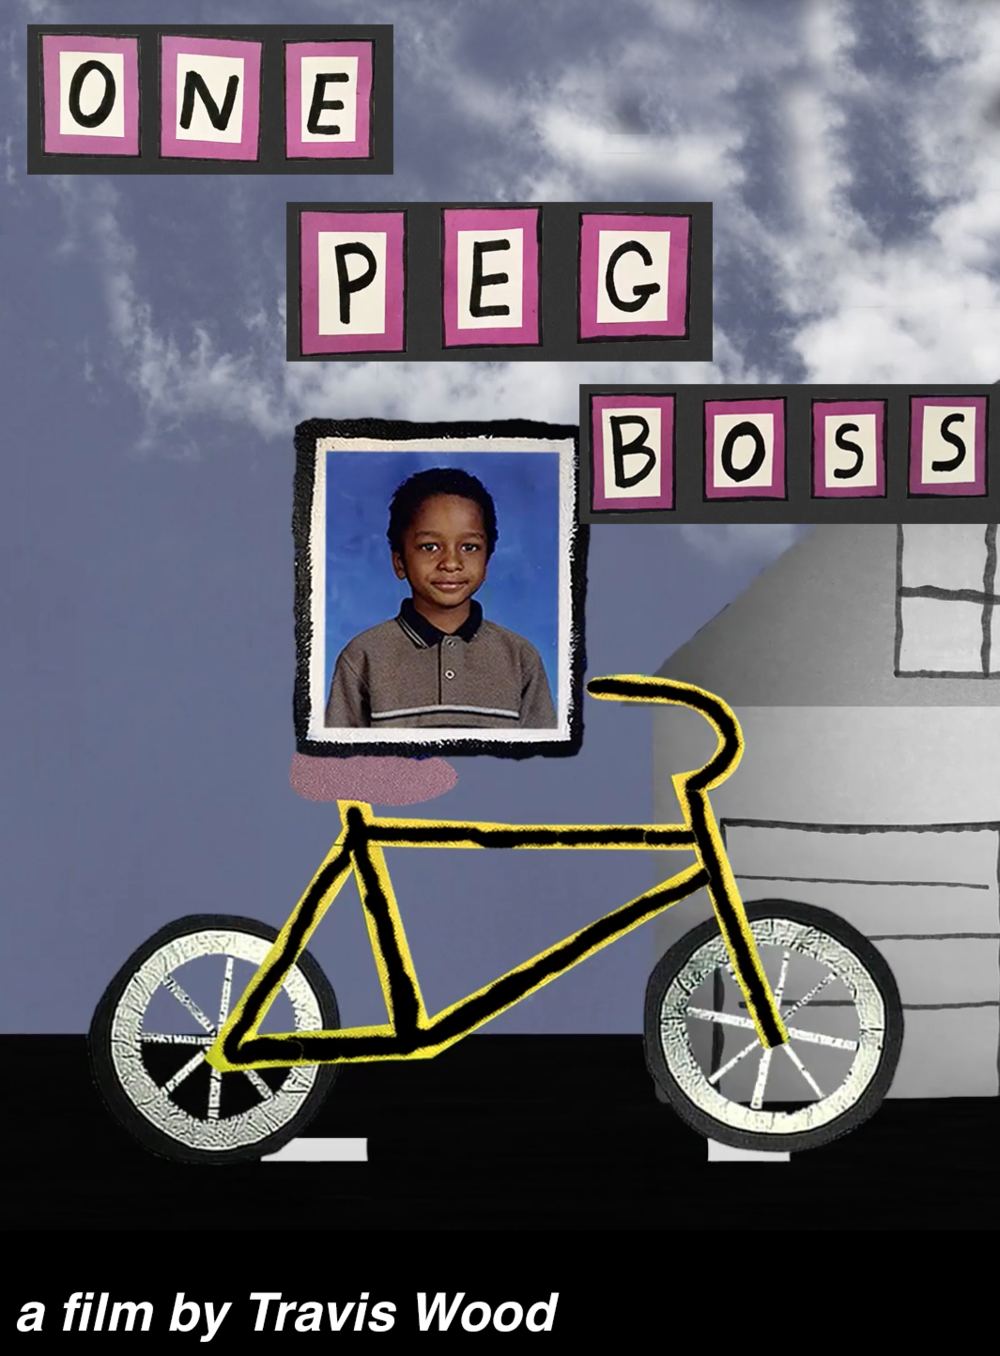 One Peg Boss